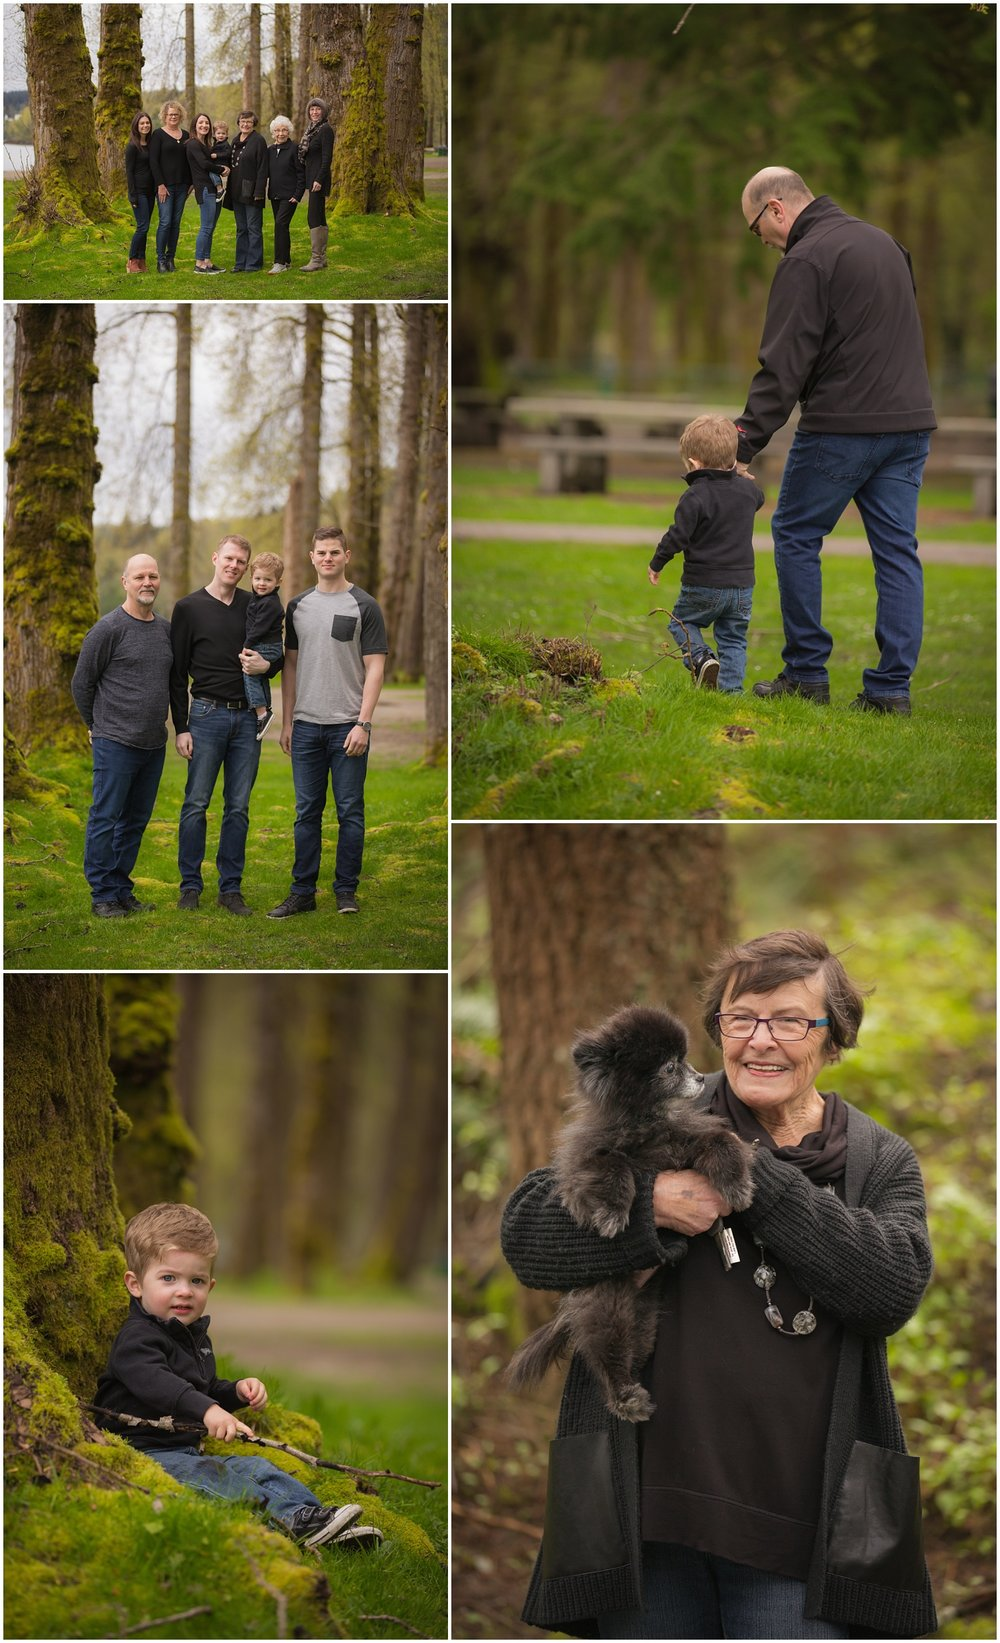 Amazing Day Photography - Barnet Marie Park Family Session - Burnaby Family Session - Burnaby Family Photographer (8).jpg